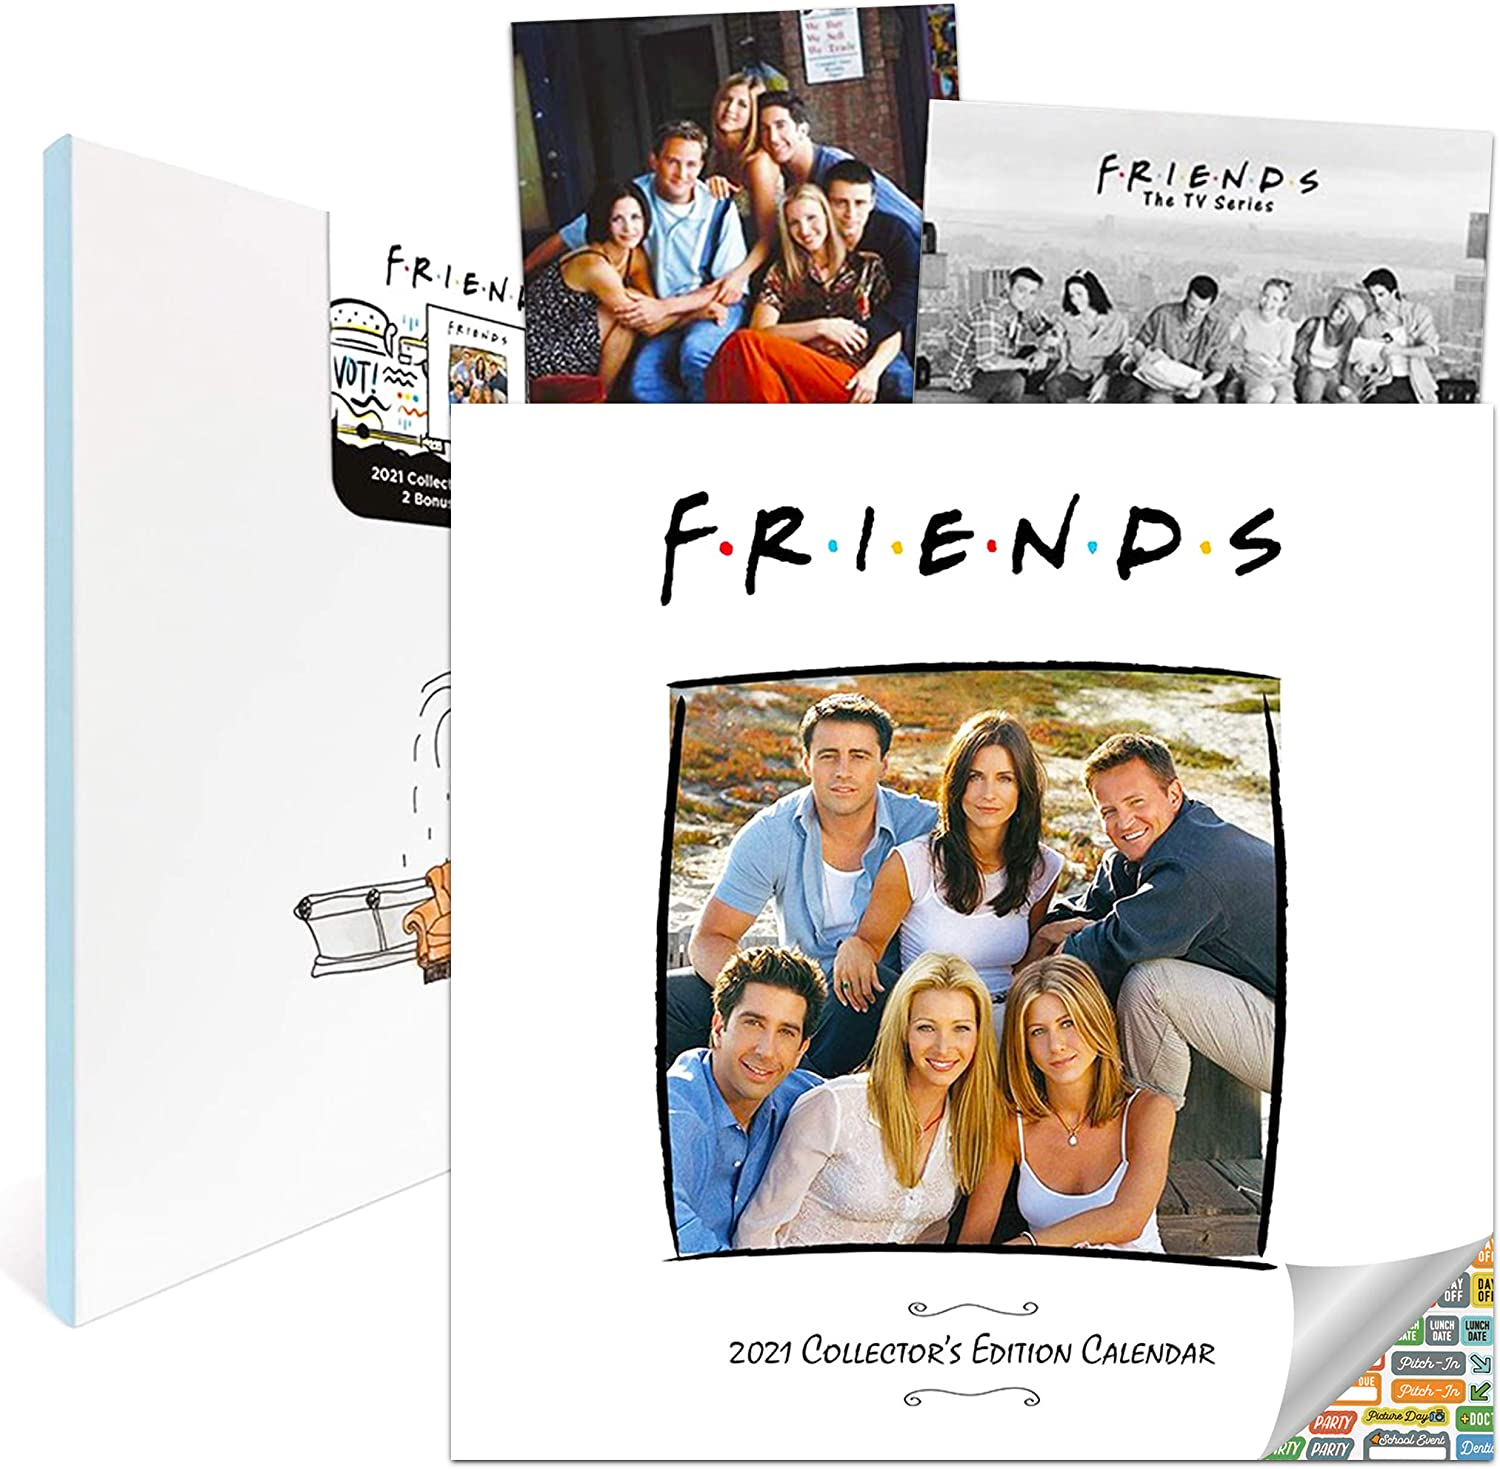 Friends Collector Calendar 2021 Bundle - Deluxe 2021 Friends Collector's Edition Calendar with Over 100 Calendar Stickers (Friends Gifts, Office Supplies)